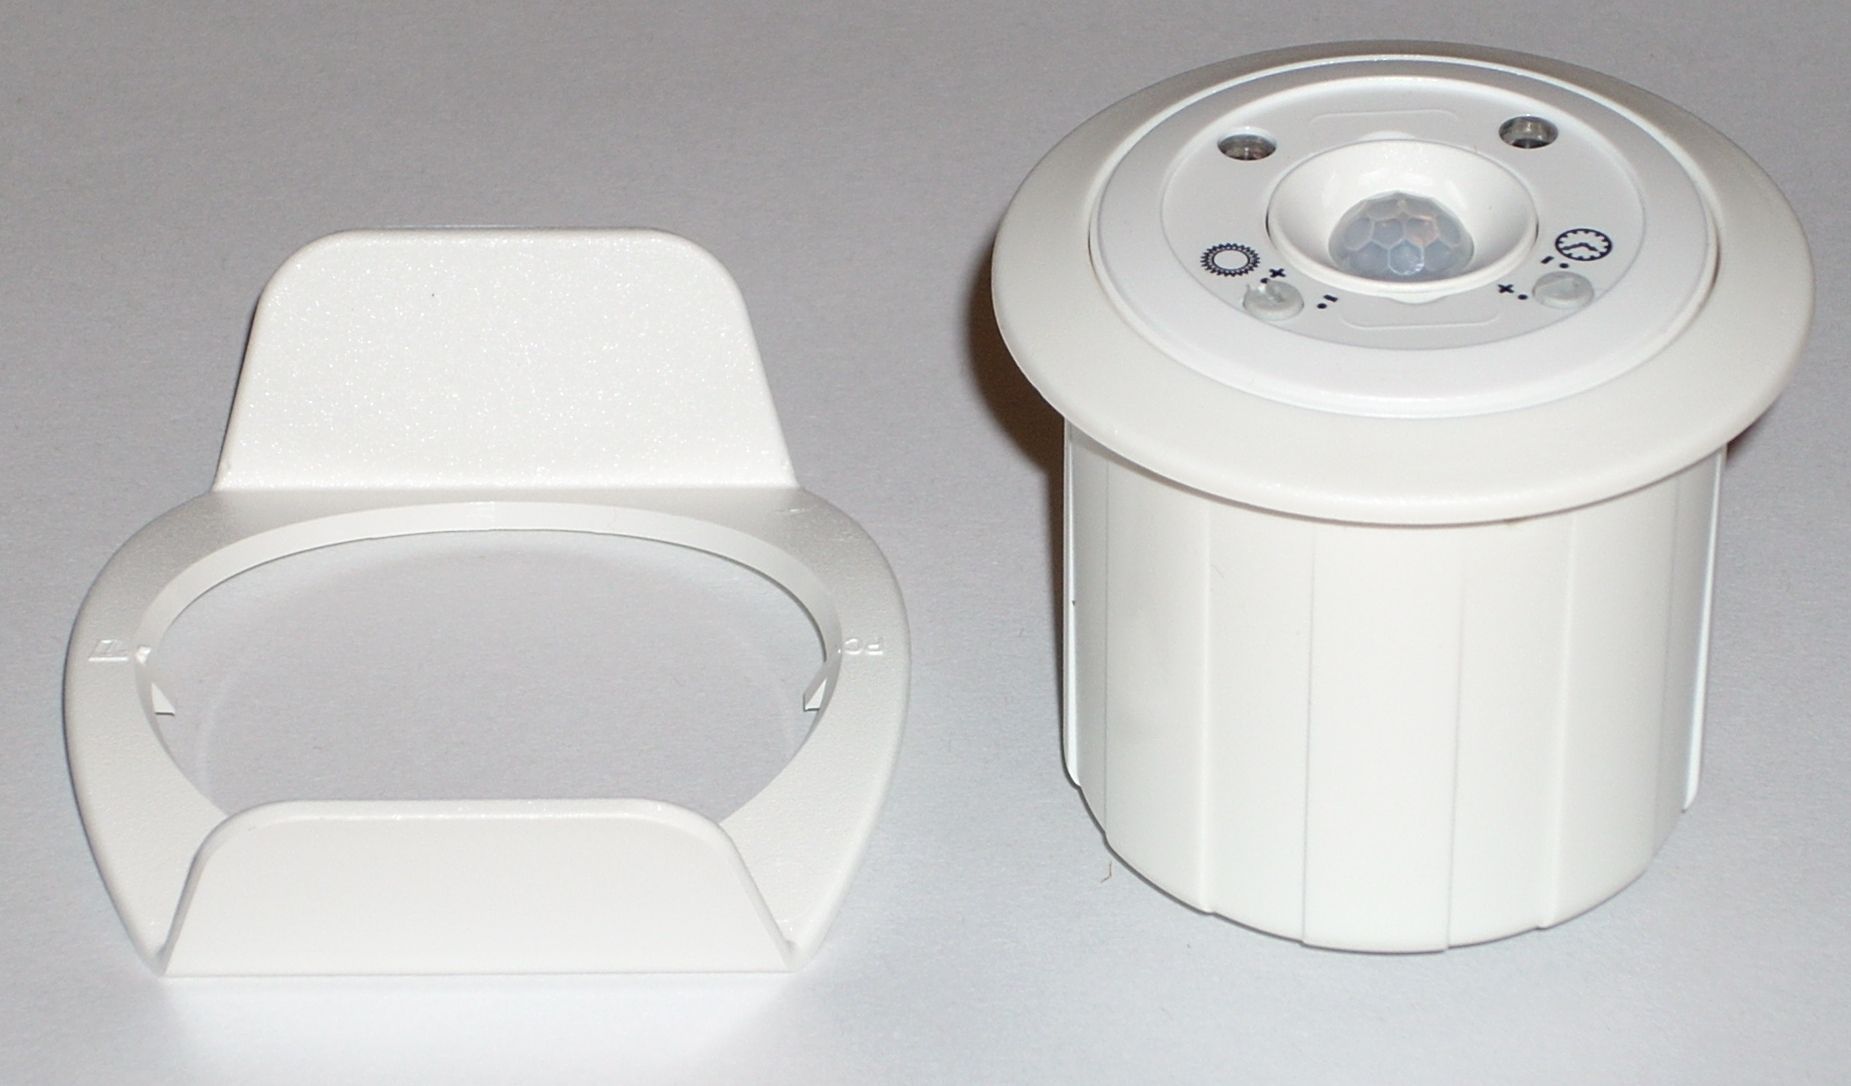 Occupancy sensor with clip